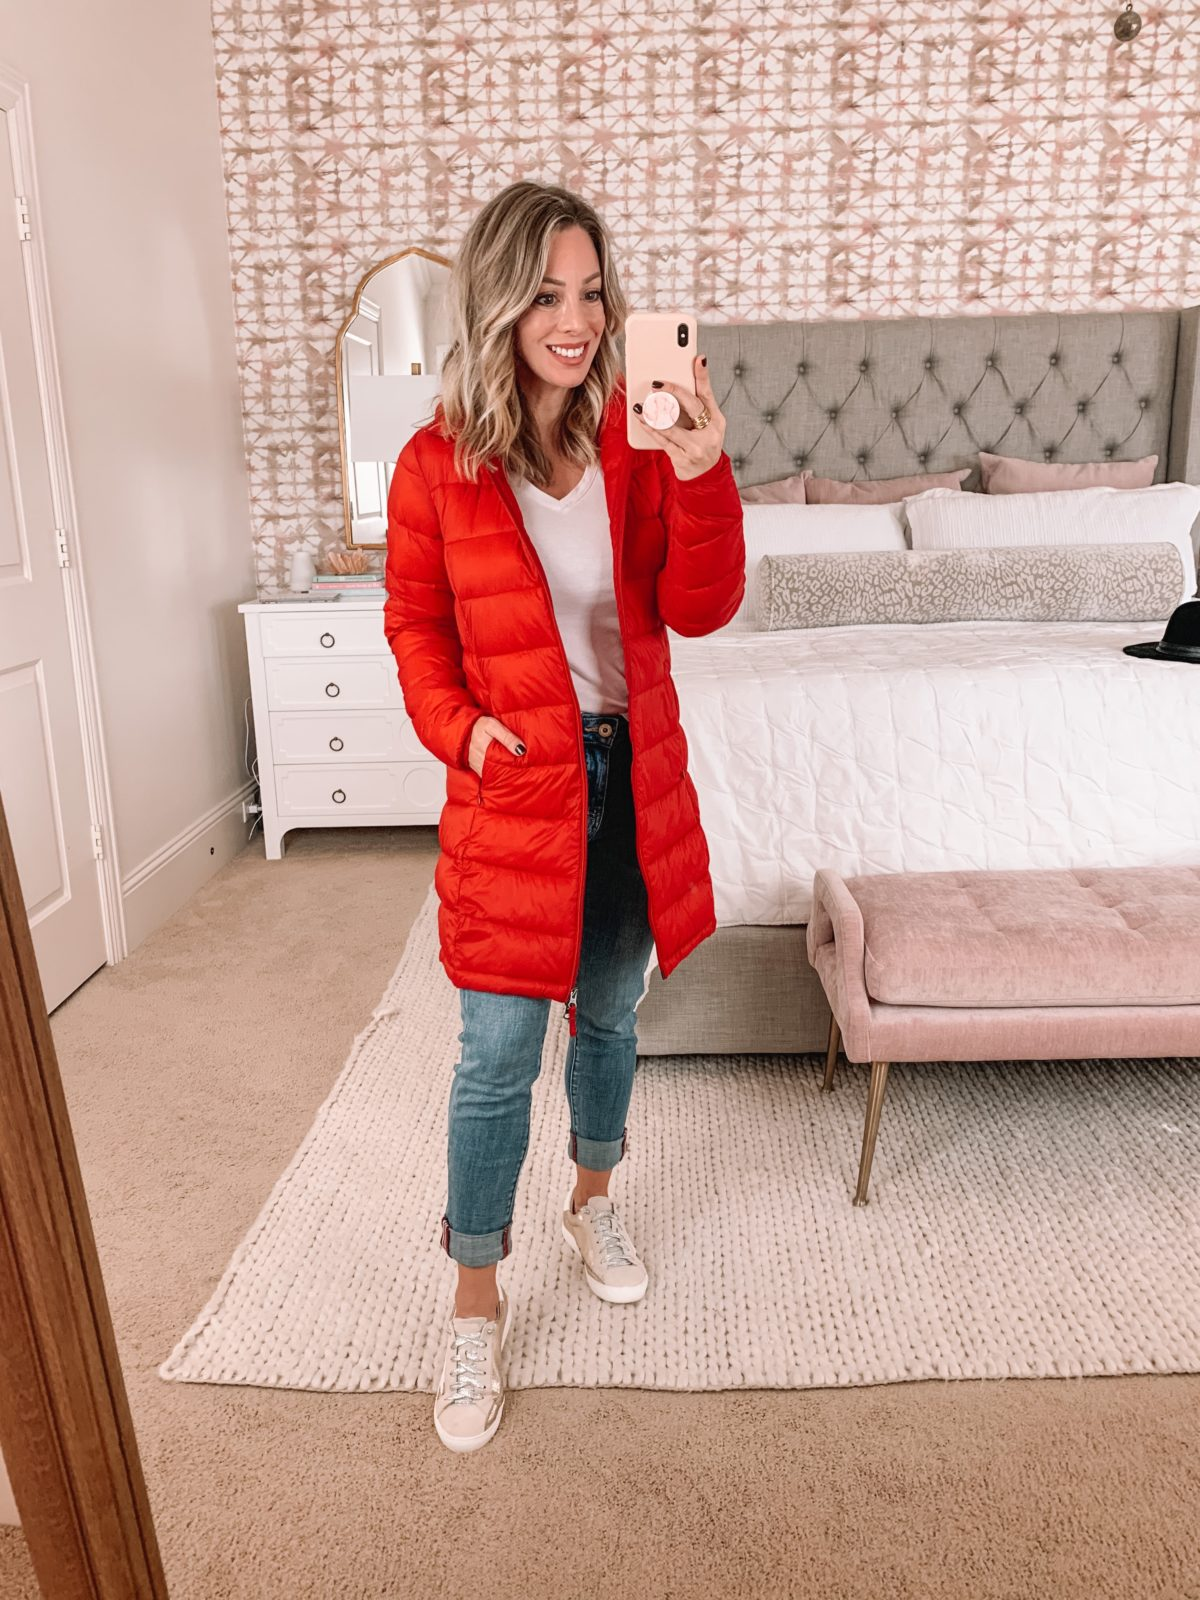 Amazon Fashion Faves, Tee, Puffer Jacket, JAG Jeans, Sneakers